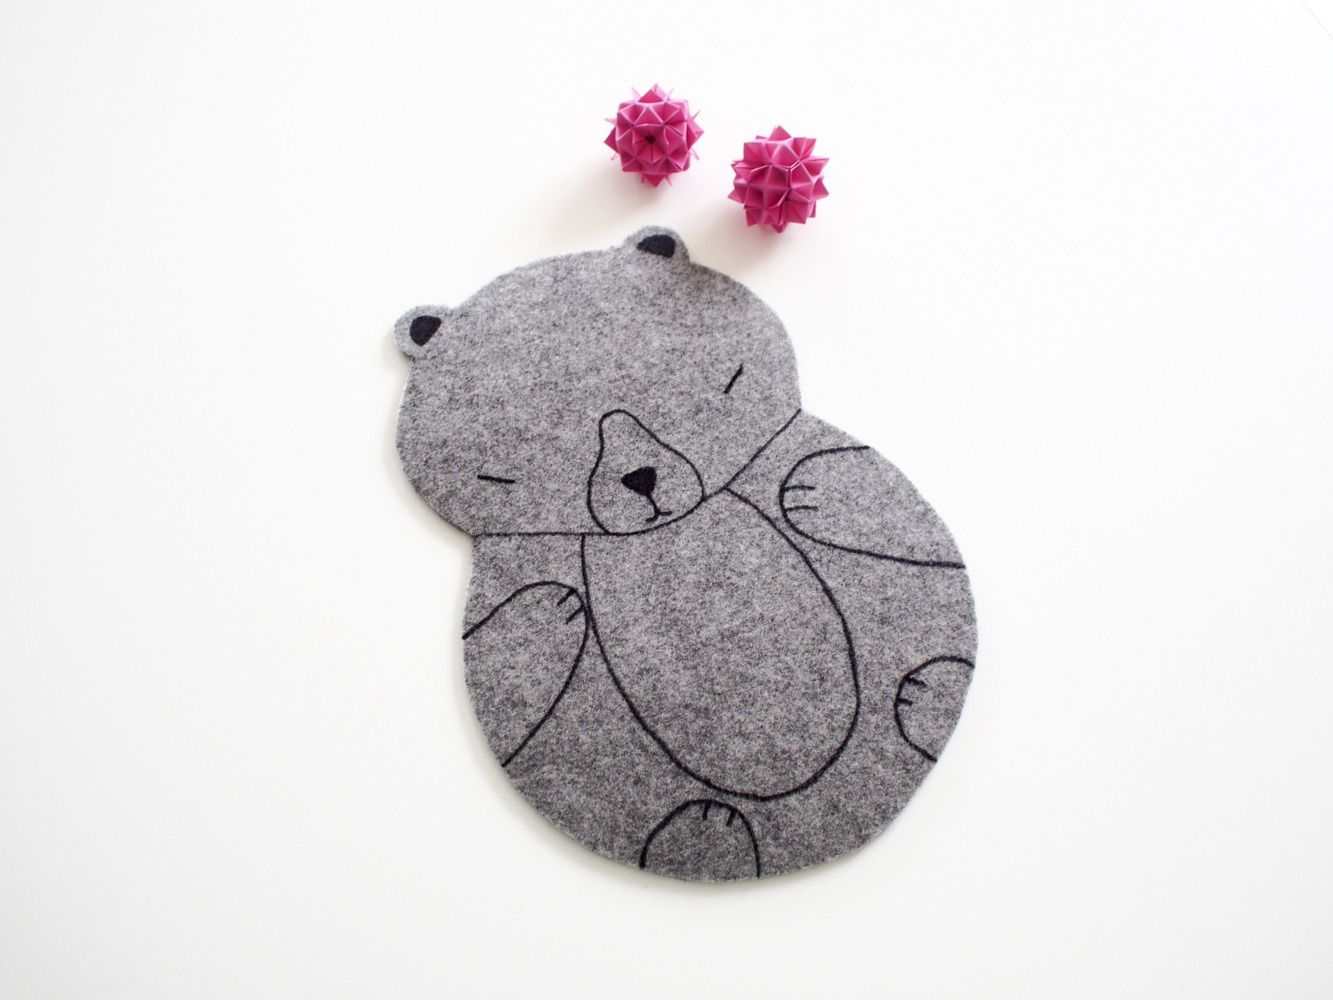 Tapis de souris - Ours Kawaii - Décoration de bureau en feutrine grise : Meubles et rangements par Kamikire  Kawaii Mouse pad - bear mouse mat made with grey felt